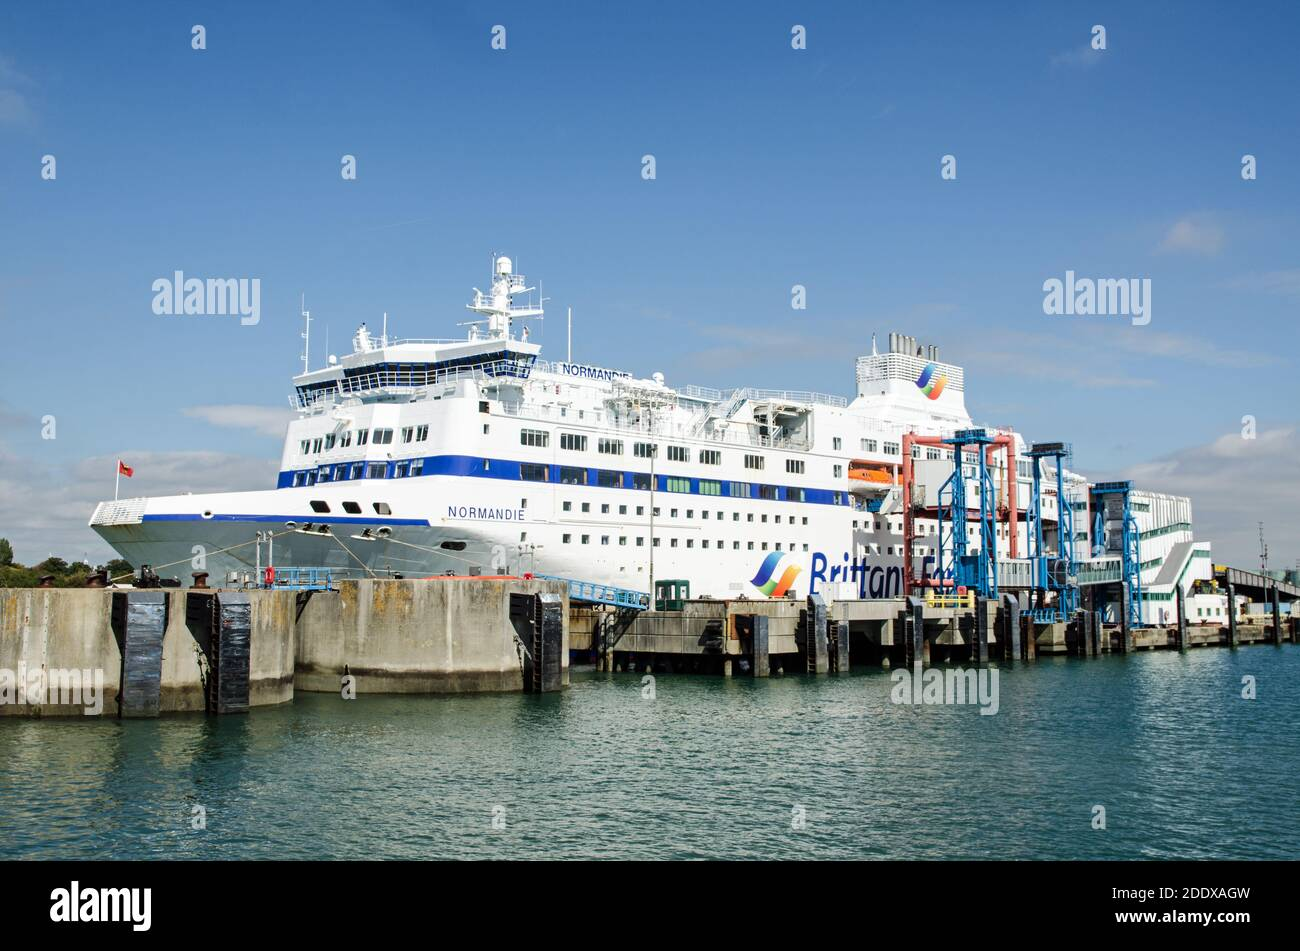 Portsmouth, UK - September 8, 2020: Side view of the large passenger ferry Normandie run by Brittany Ferries moored in Portsmouth Harbour on a sunny s Stock Photo